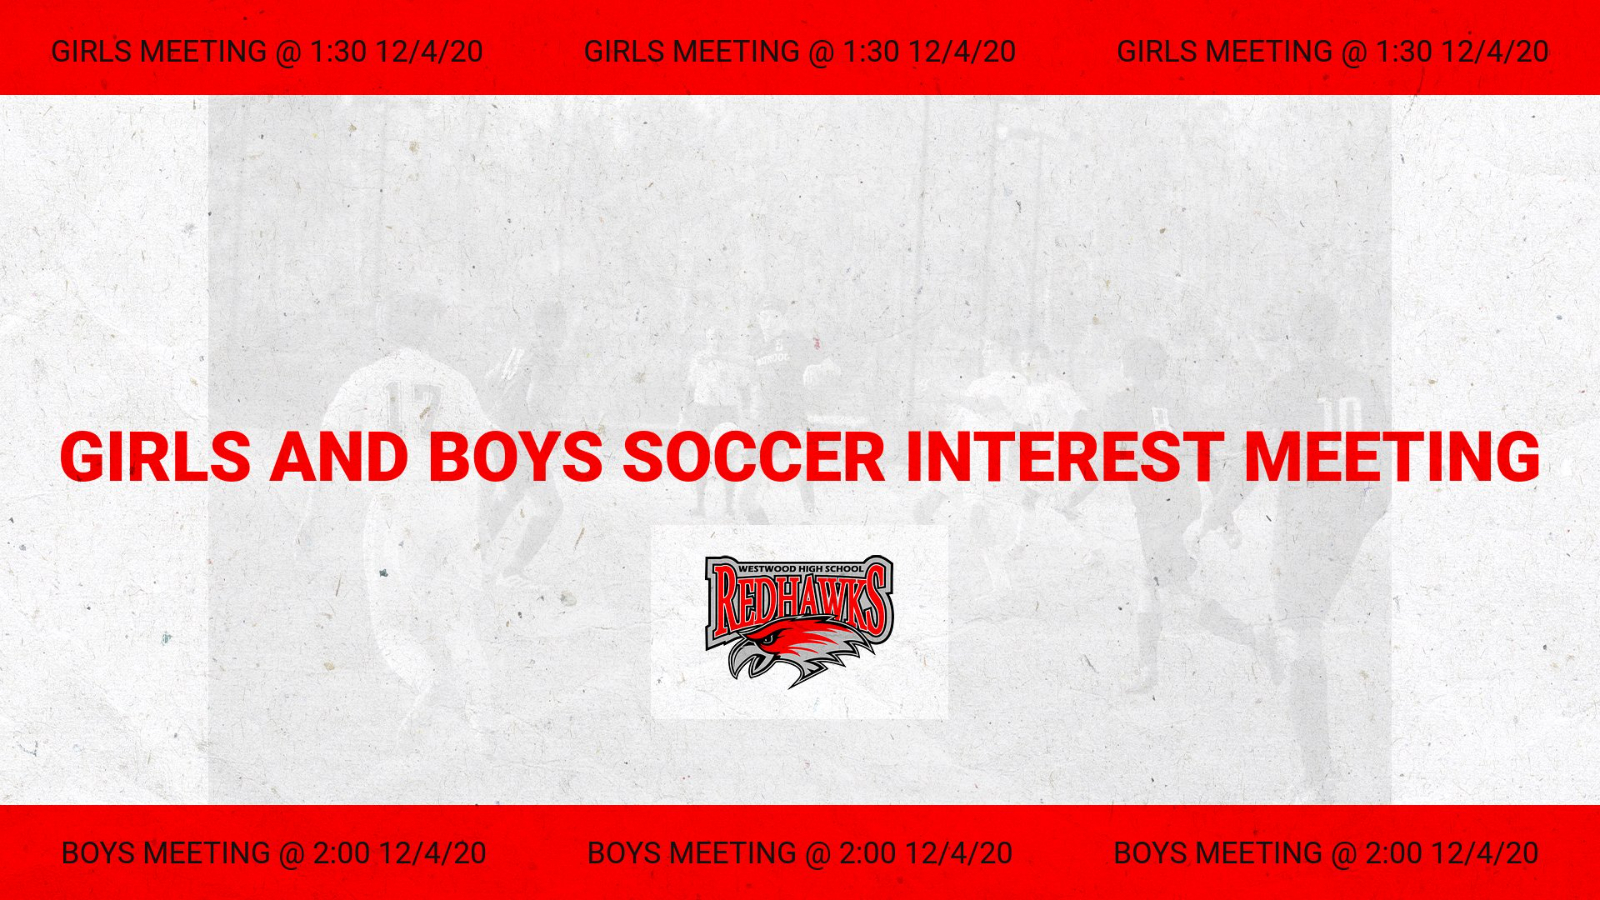 Boys and Girls Soccer Interest Meeting